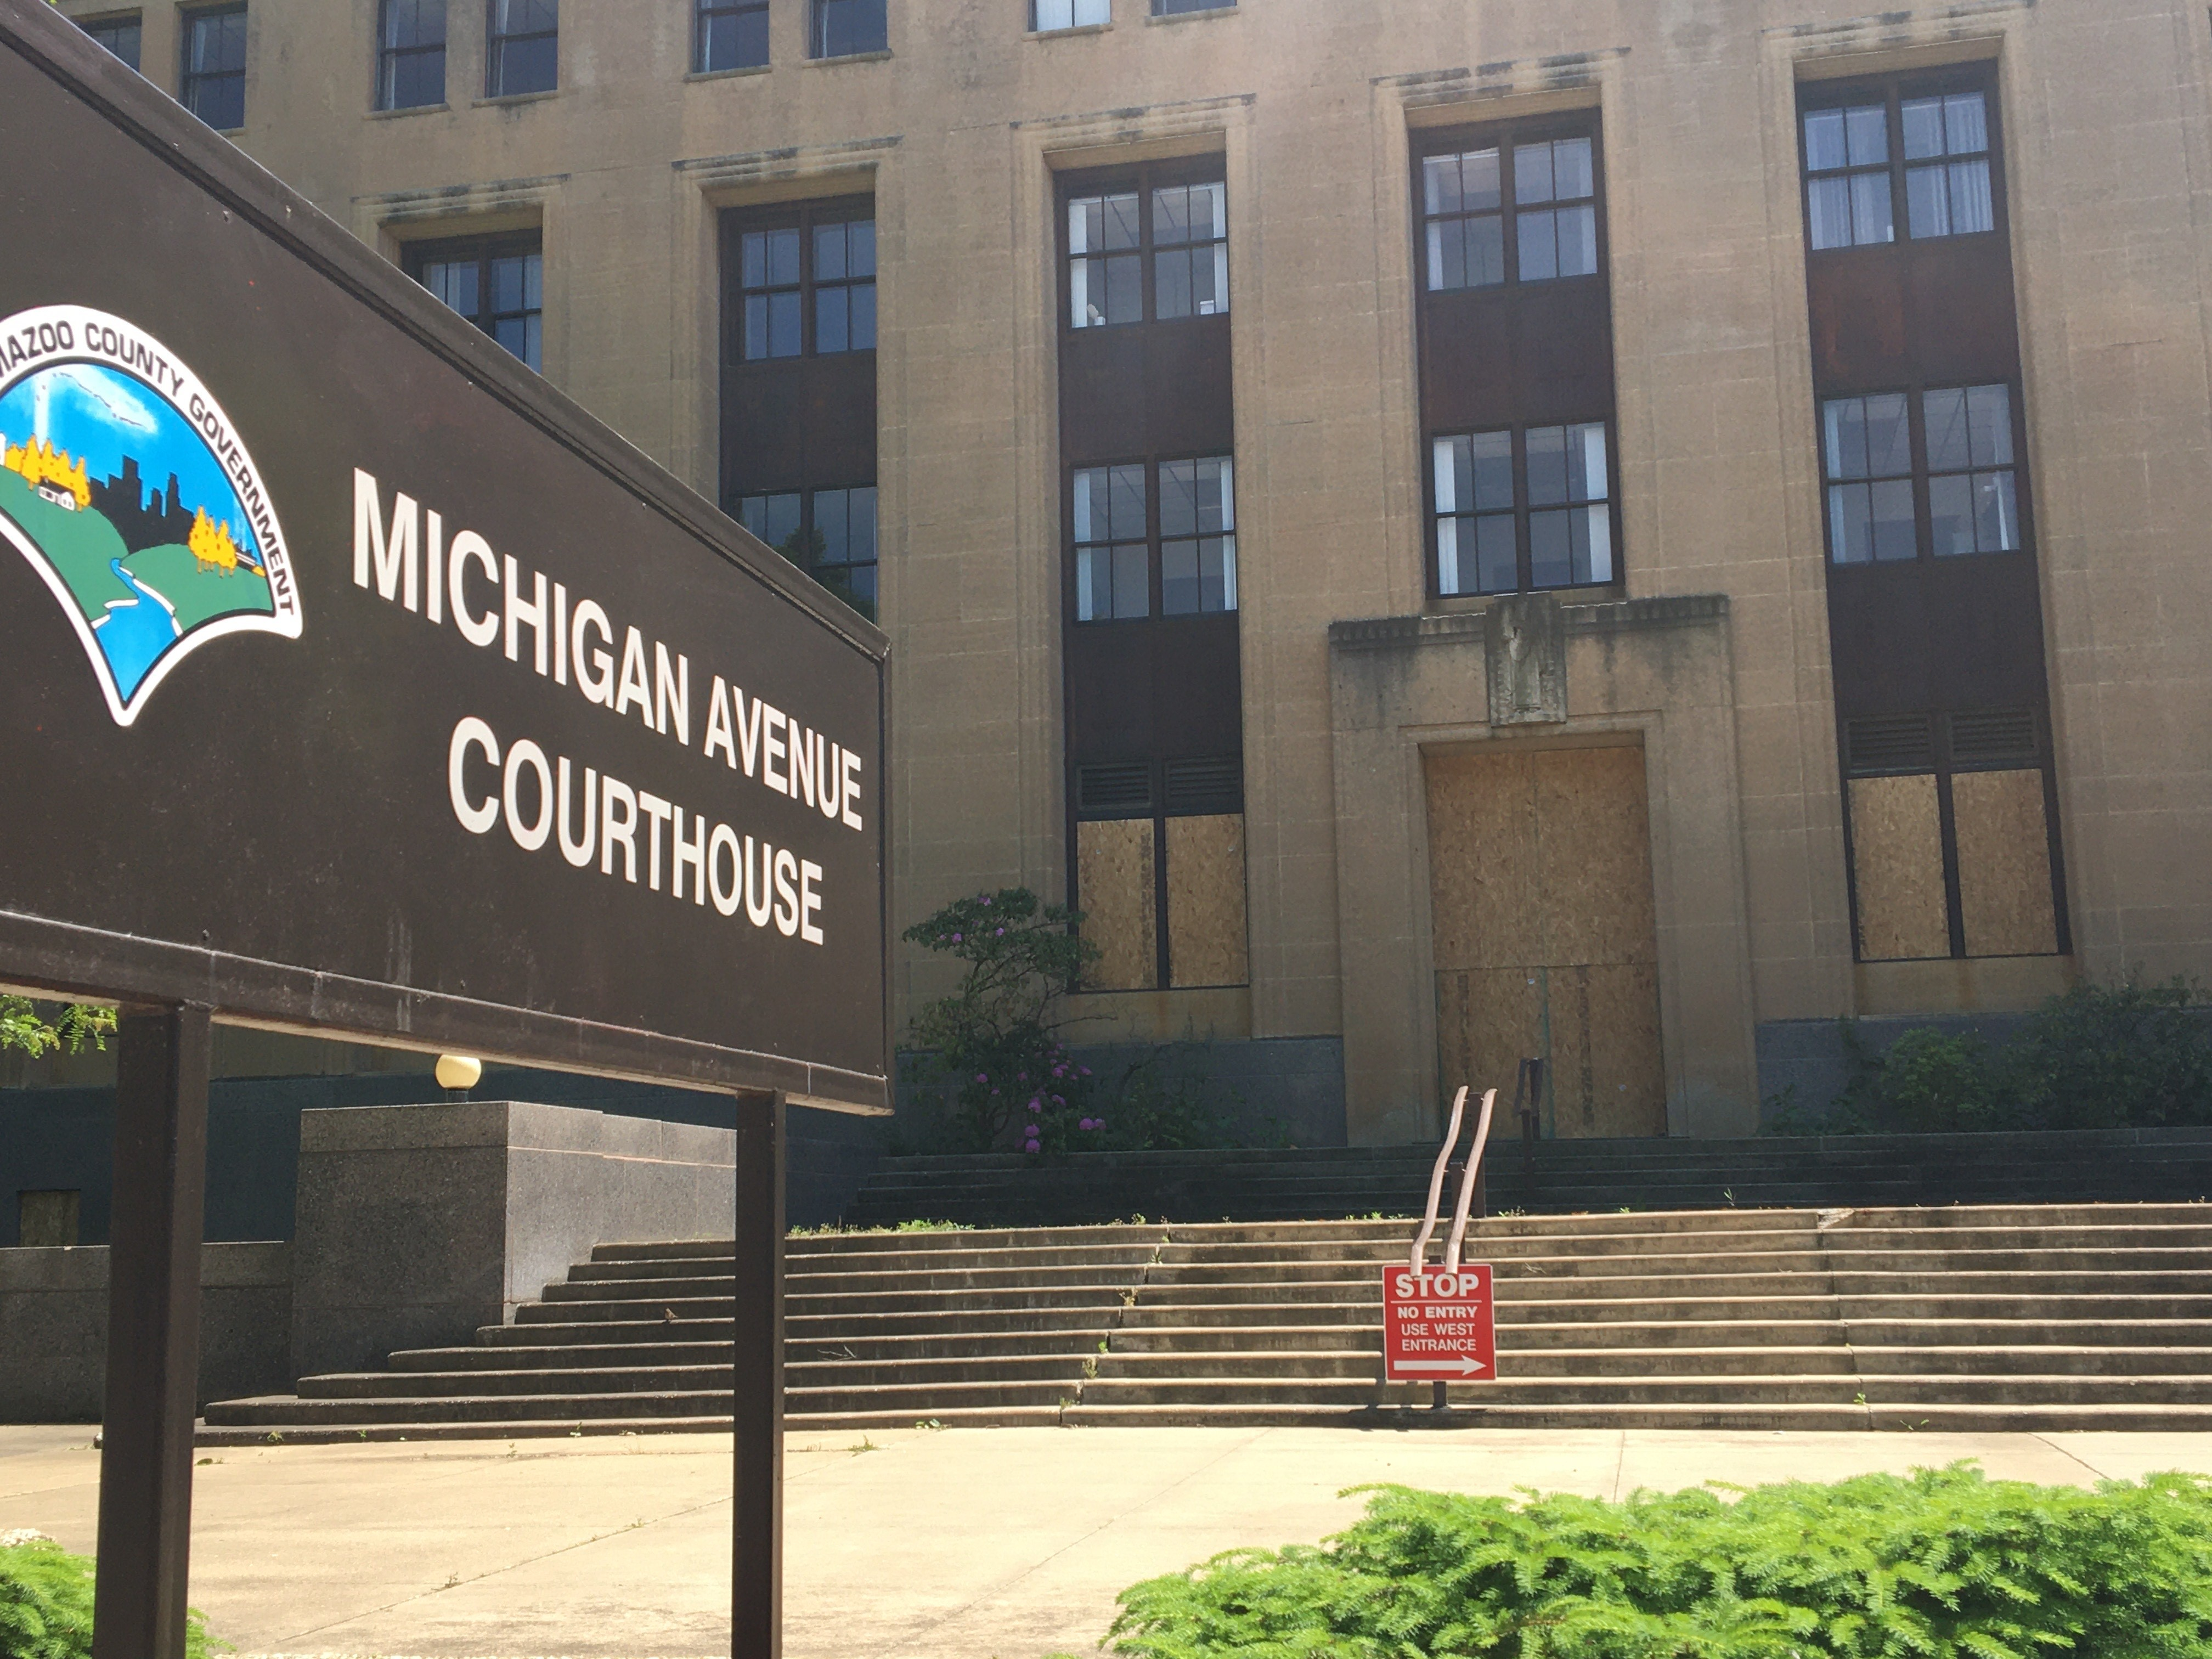 Kalamazoo County government officials closed up the Michigan Avenue Courthouse on Tuesday, June 2, 2020, after declaring a state of emergency following overnight looting and vandalism. (WWMT/Manny Revilla)